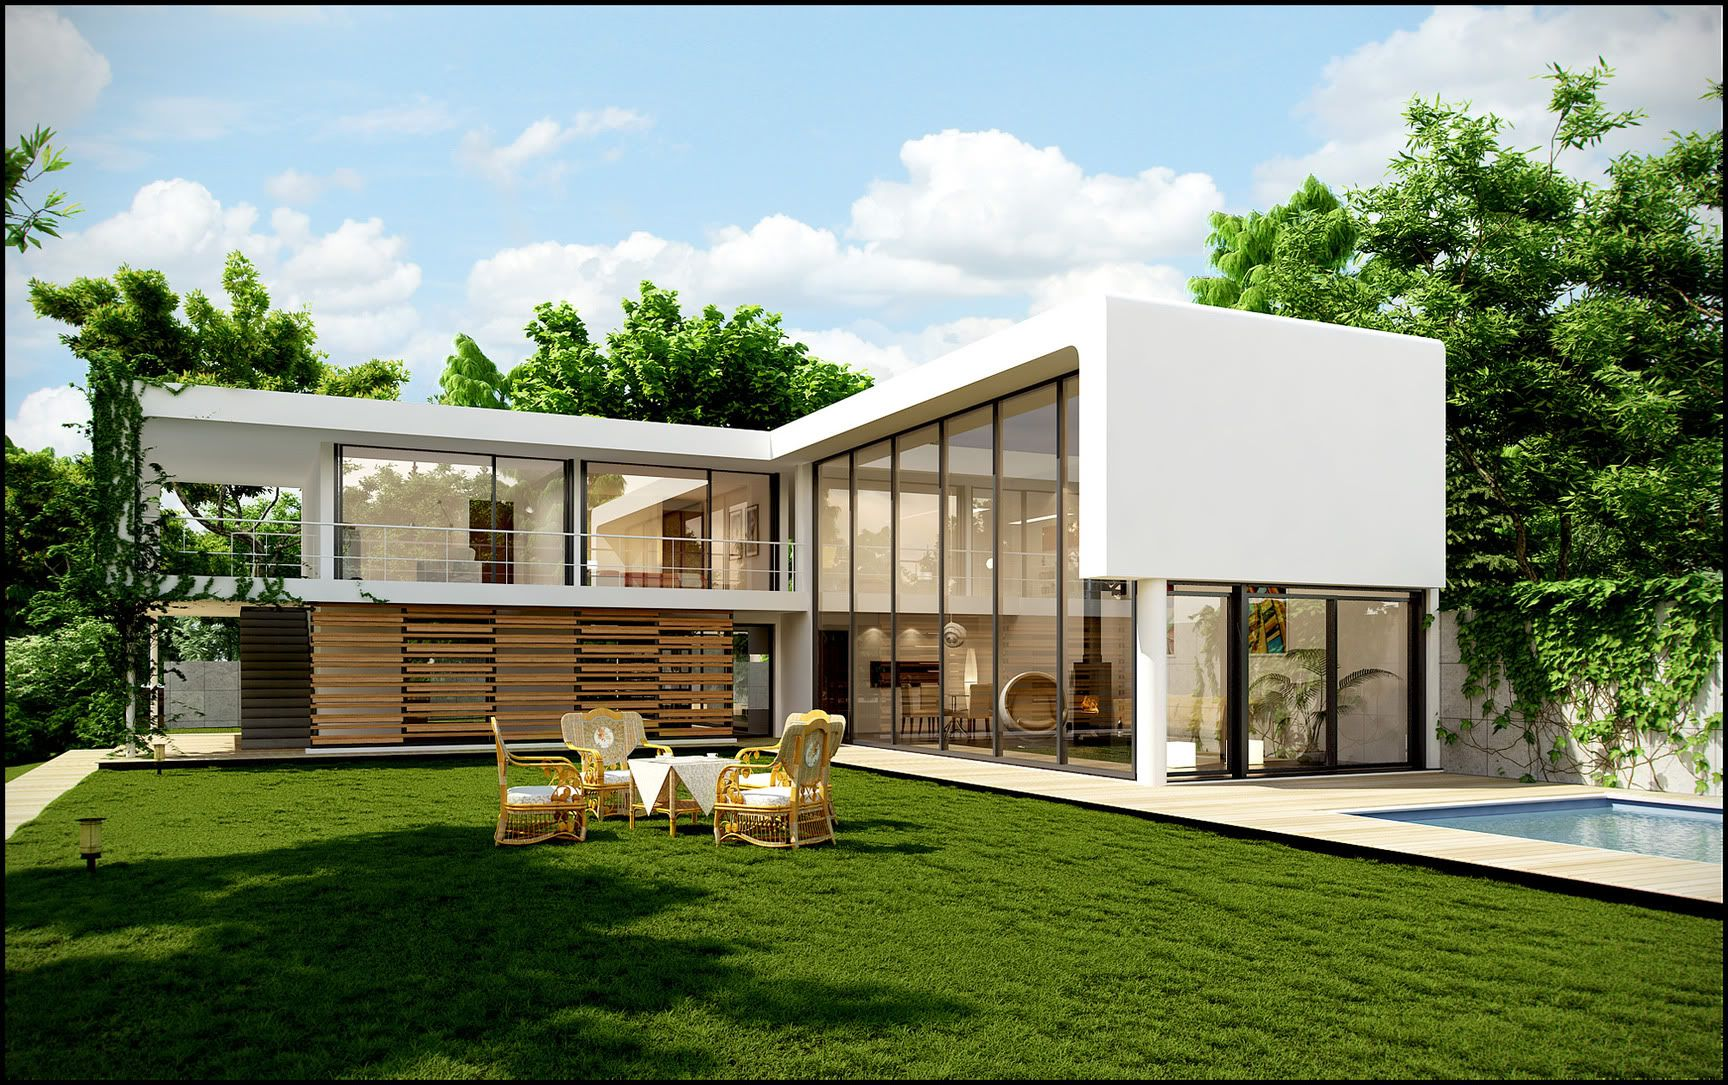 Architecture exterior impressive l shape small modern house designs with green area grass garden New build house designs